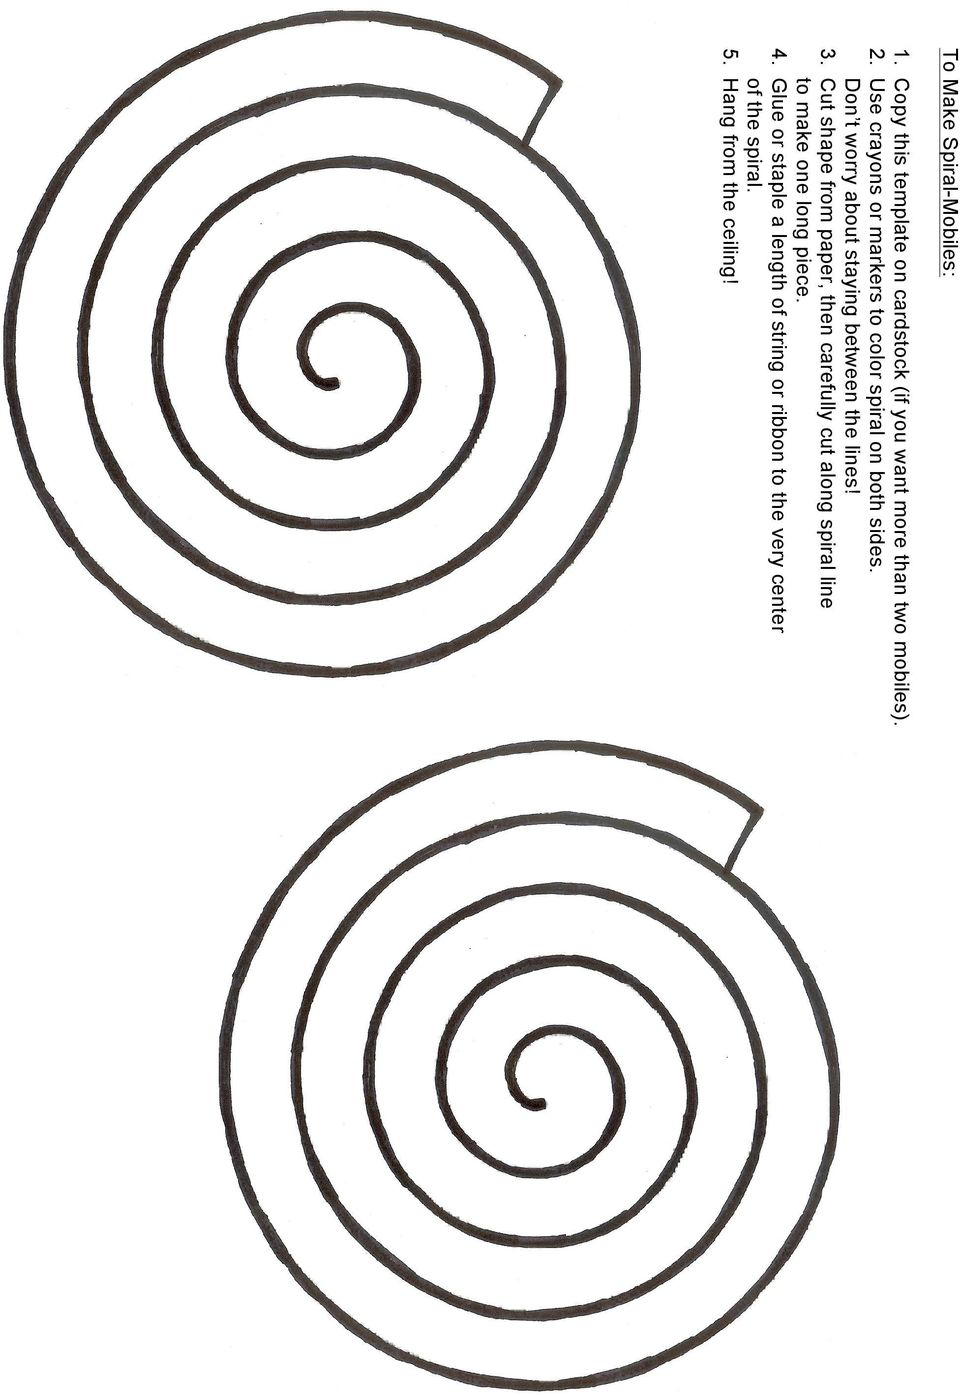 3. Cut shape from paper, then carefully cut along spiral line to make one long piece. 4.